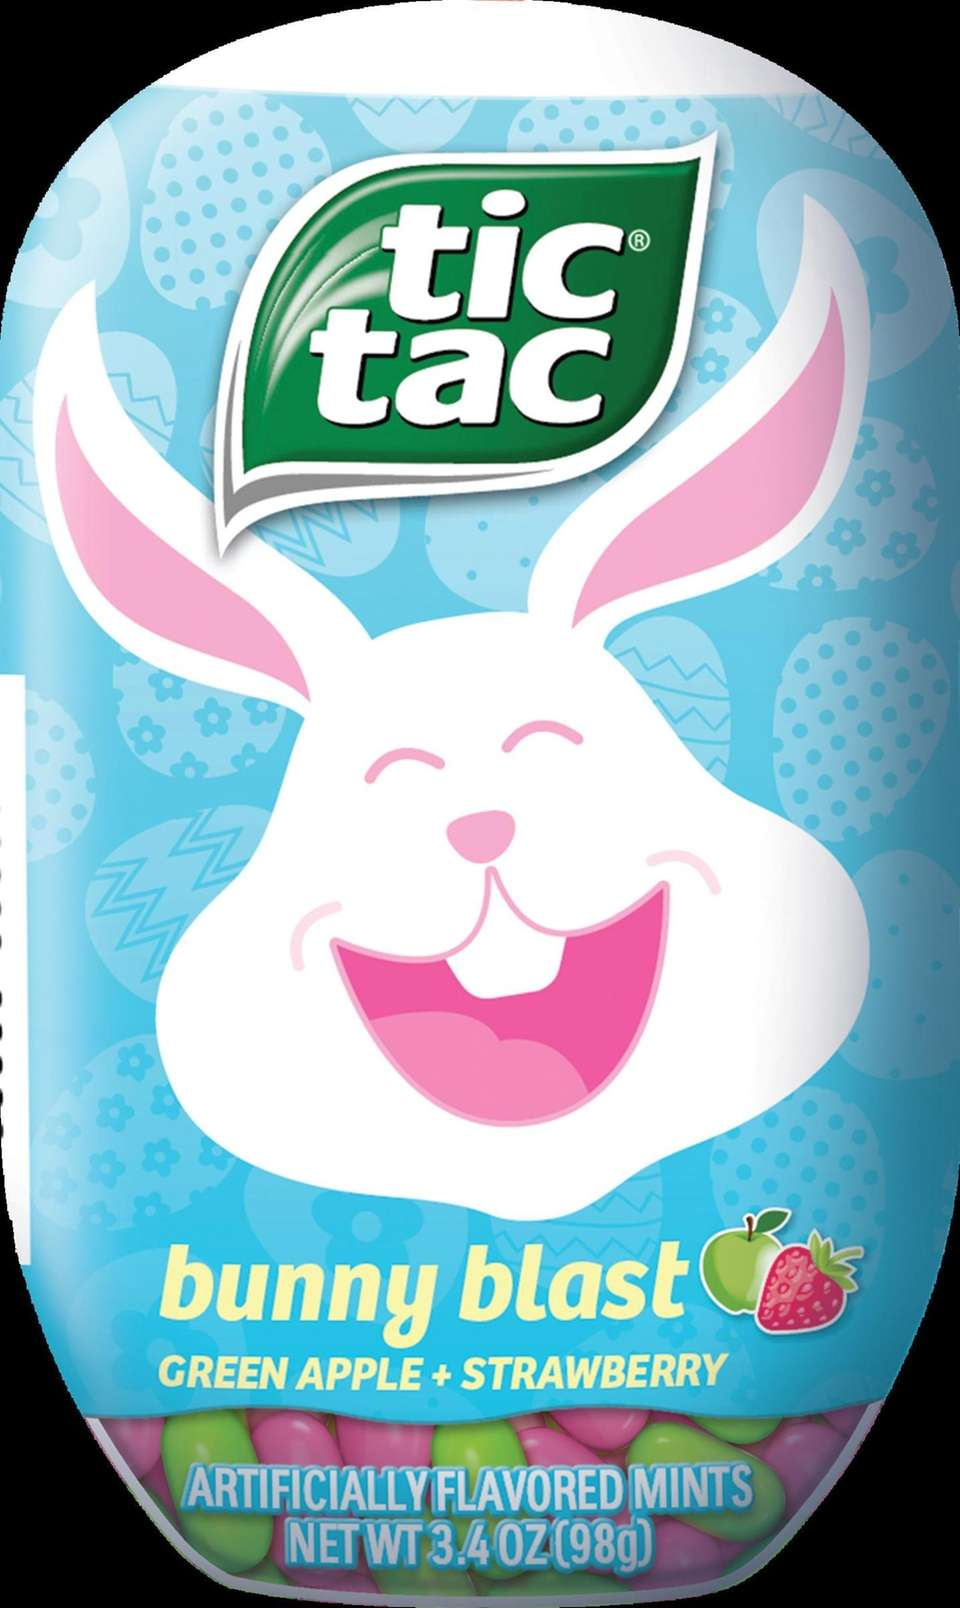 Tic Tac's seasonal candy includes Bunny Blast with